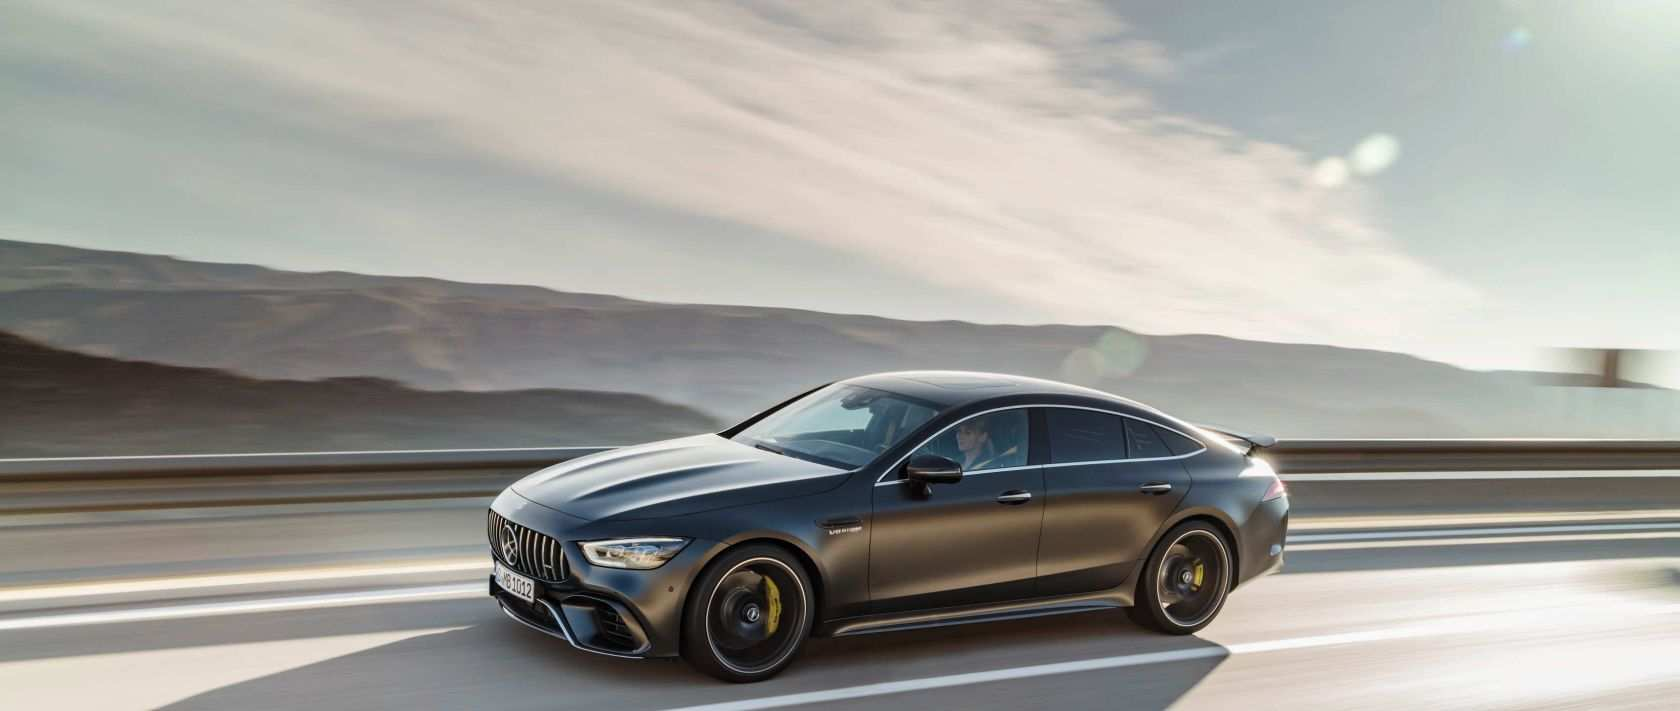 98 The Best Mercedes 2019 Amg Gt Concept And Review